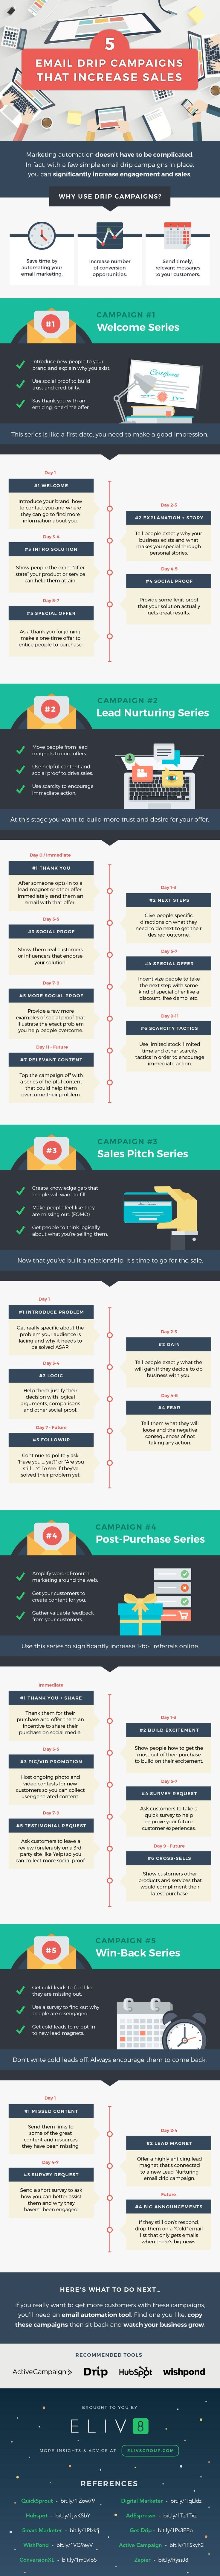 5 Email Drip Campaigns That Increase Sales #infographic #EmailMarketing #Marketing #Sales